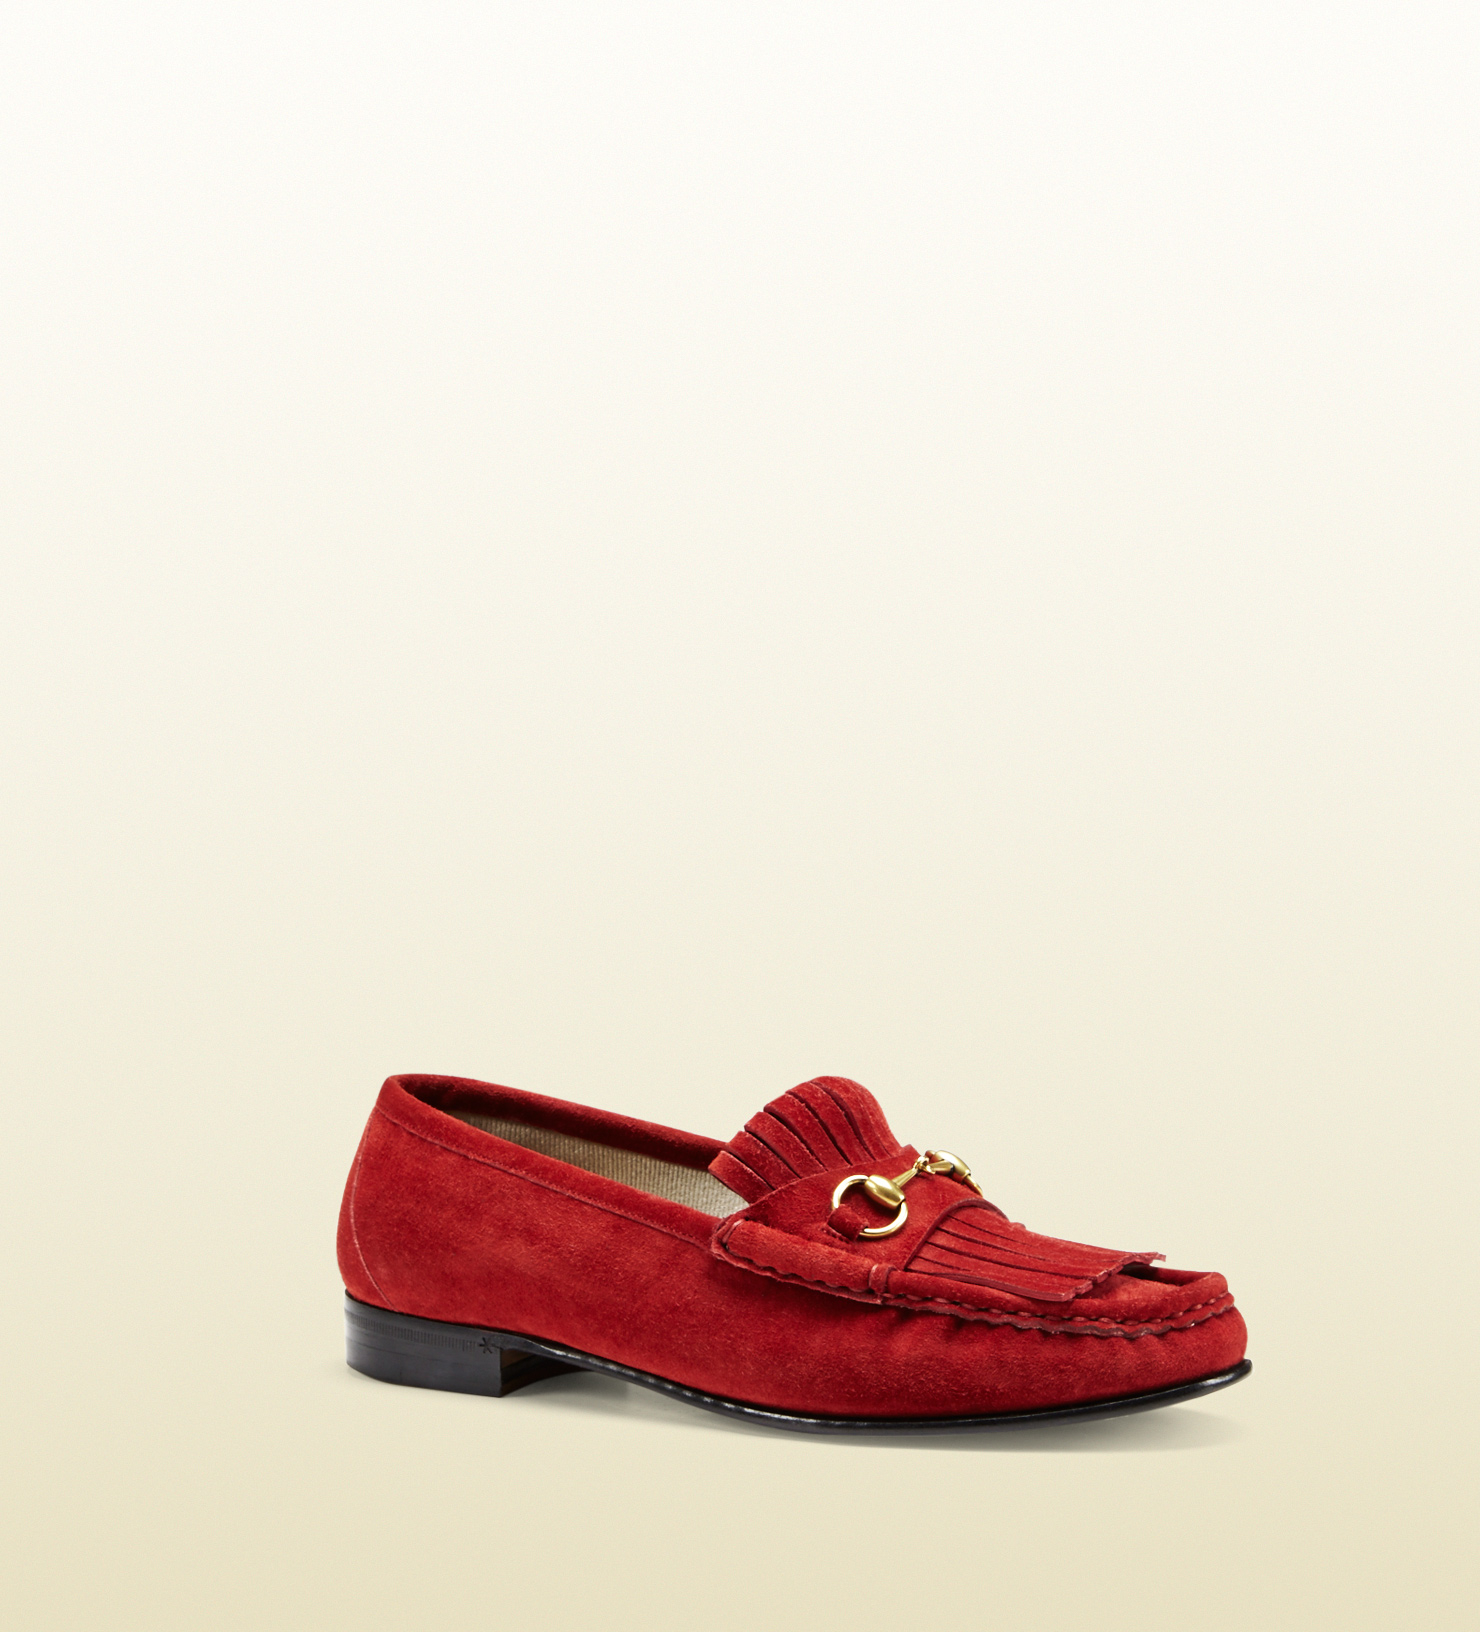 1e145faae52 Gucci Horsebit Loafer In Fringed Suede in Red - Lyst